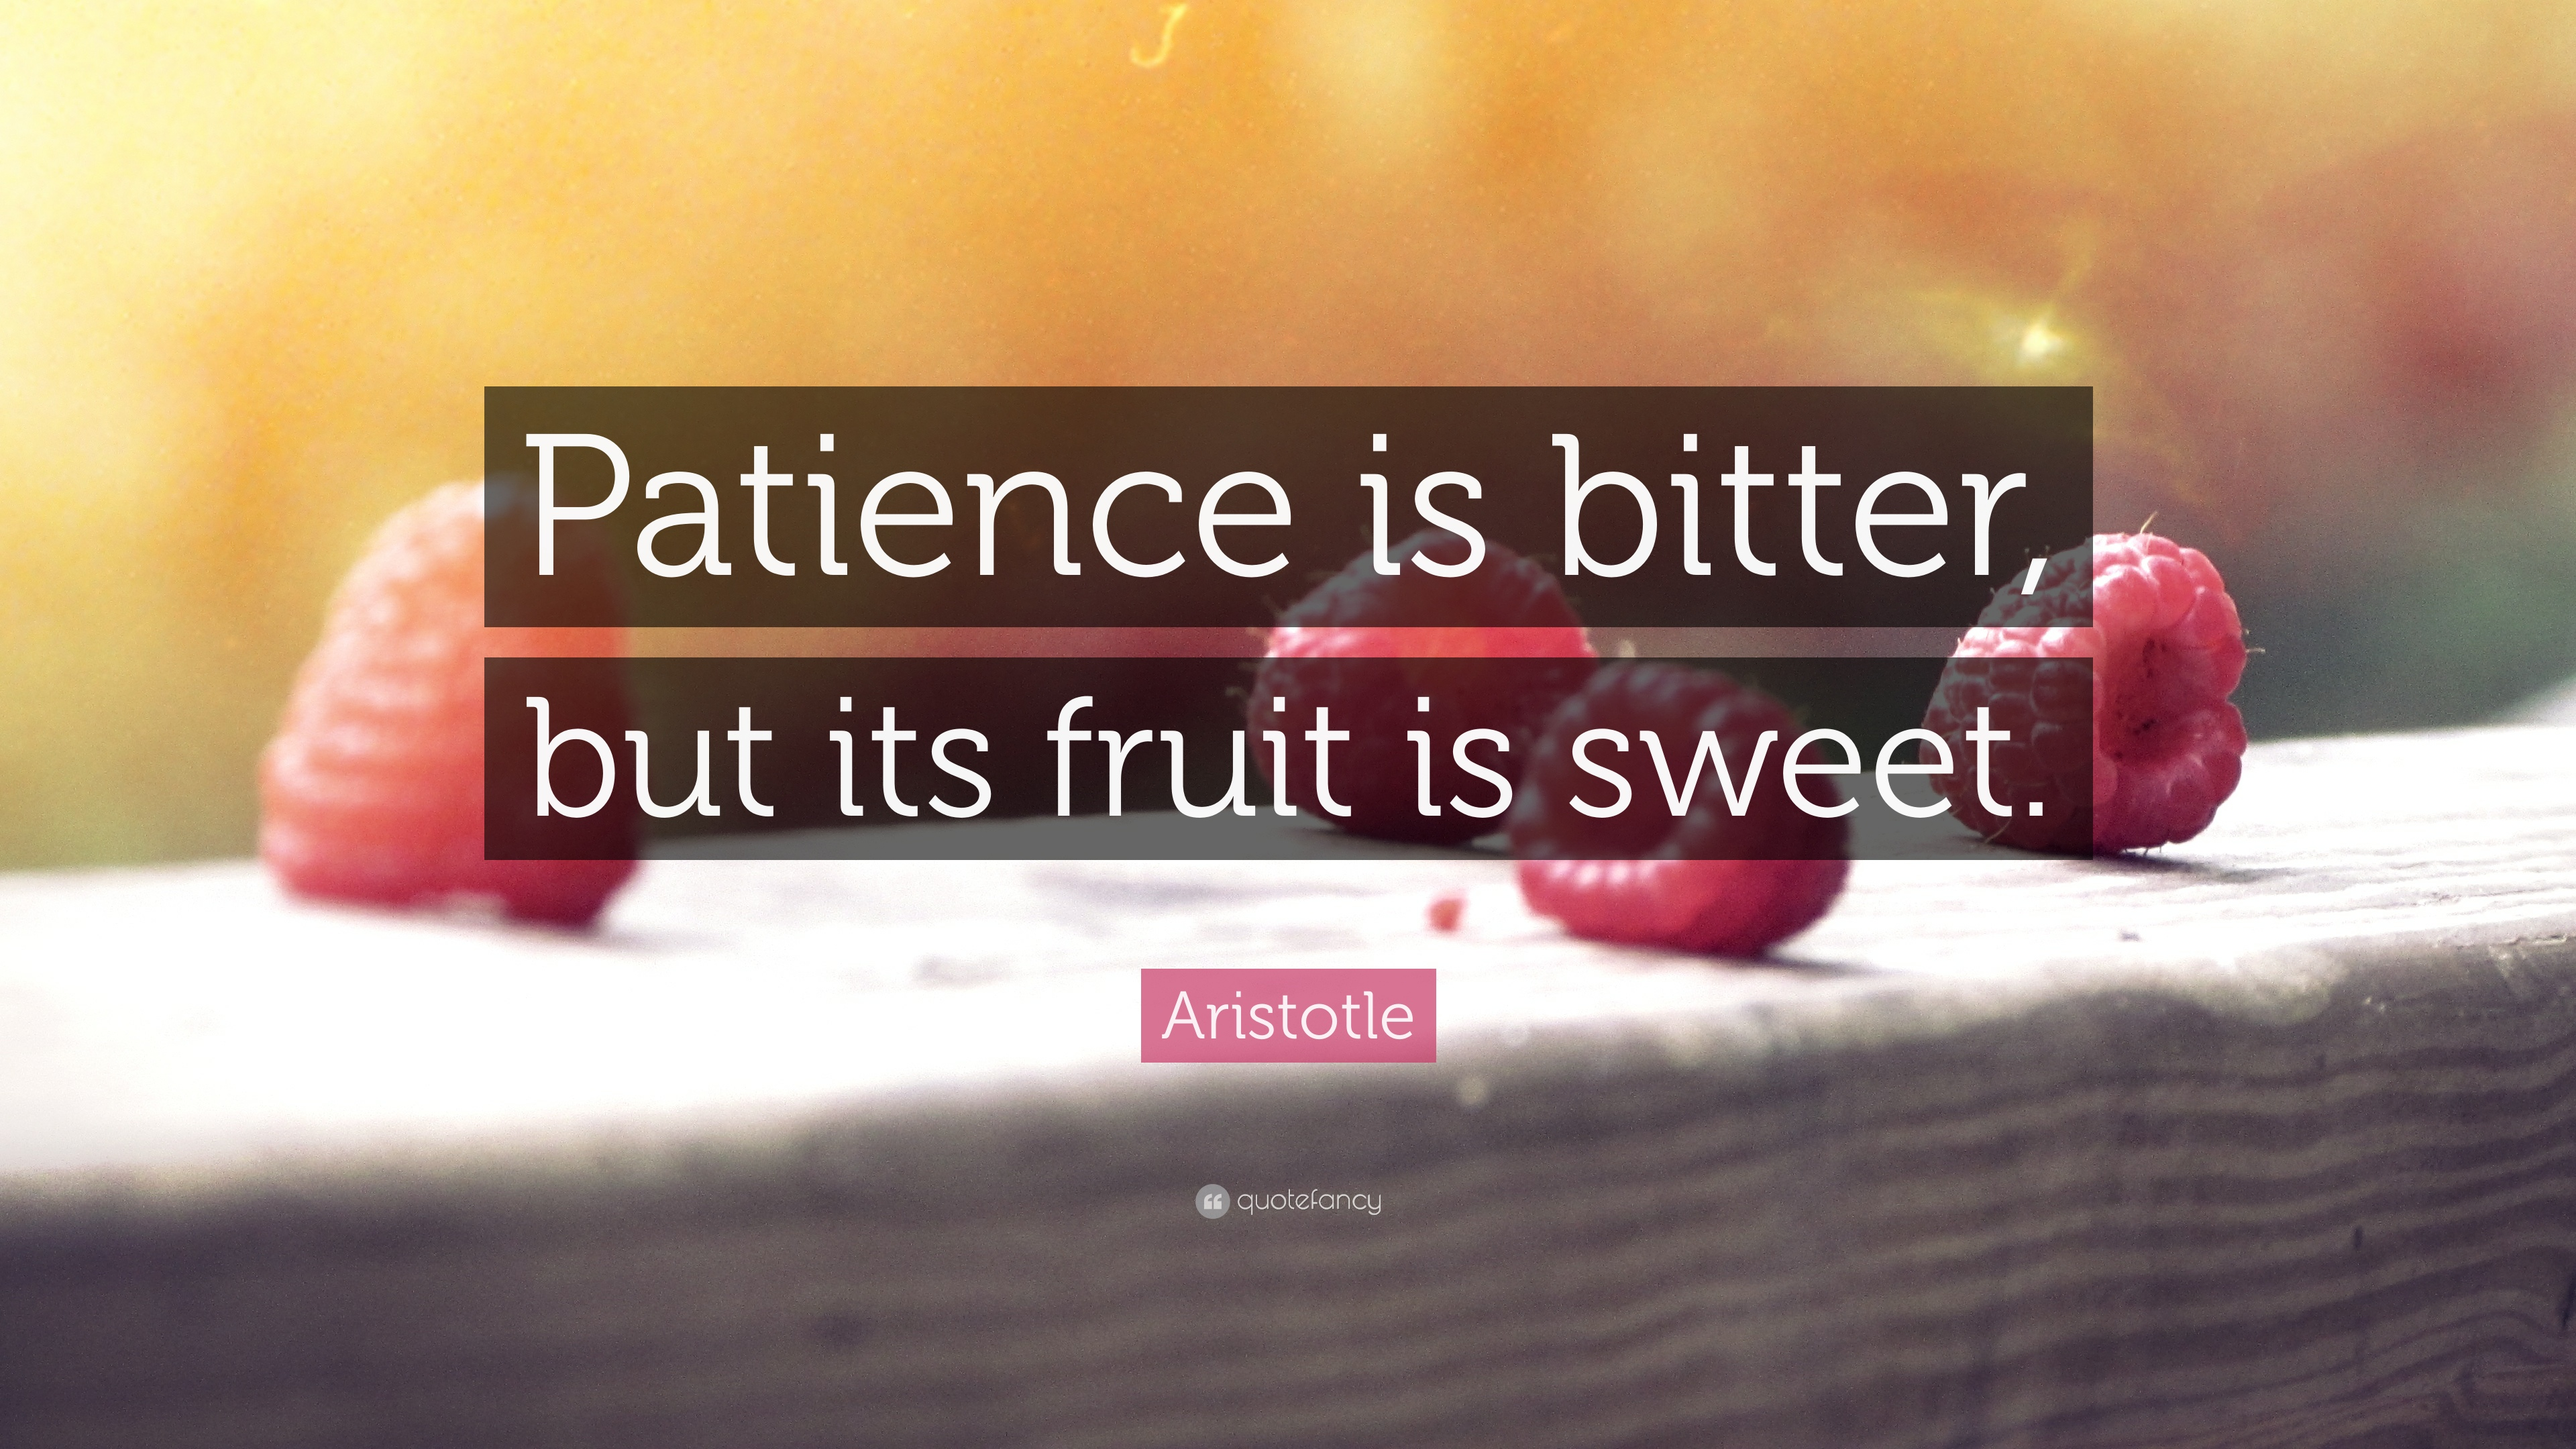 Patience Quotes: U201cPatience Is Bitter, But Its Fruit Is Sweet.u201d U2014